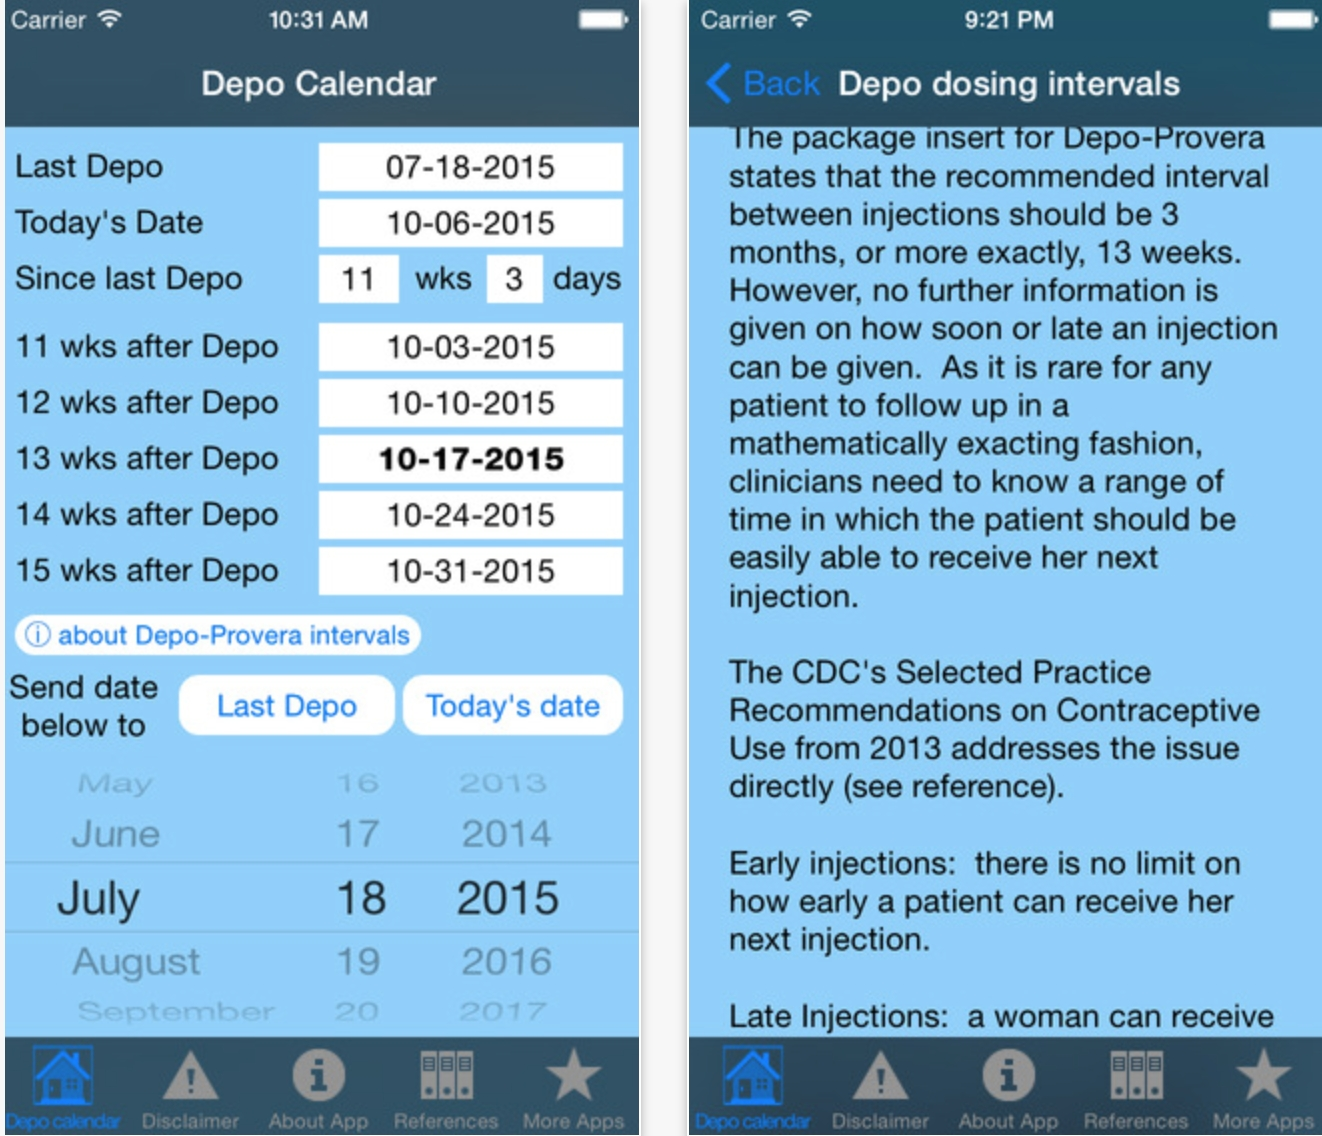 Depo Calendar App Could Significantly Improve Contraception  Depo-Provera Injection Schedule